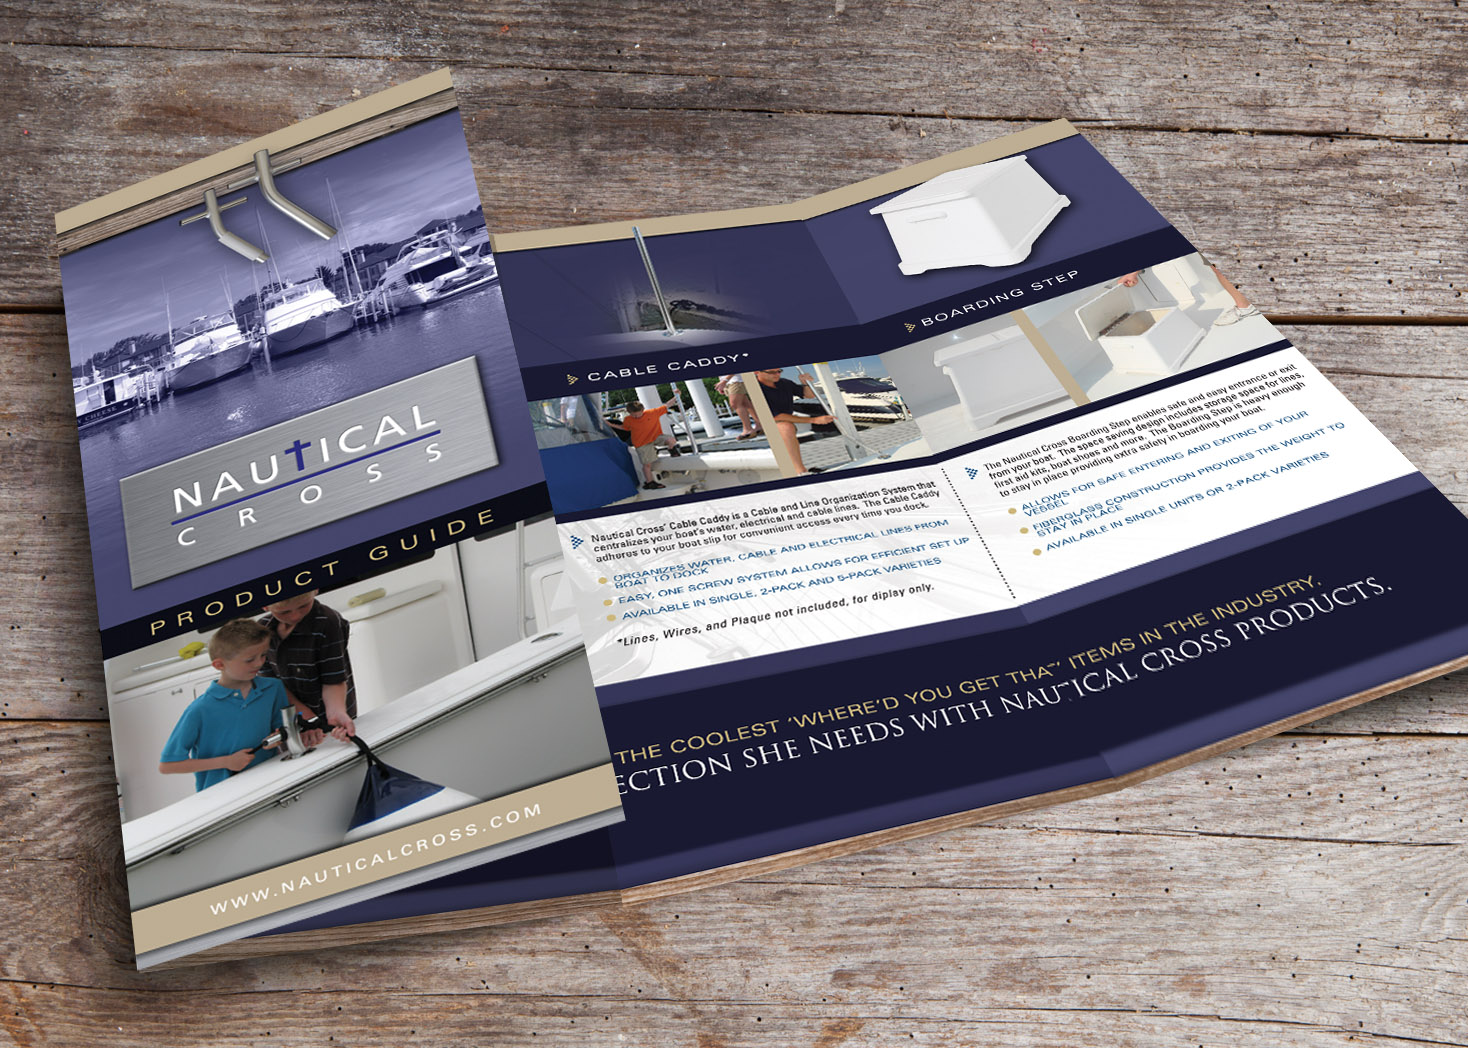 Nautical Cross - Brochure Design - Lehman Design